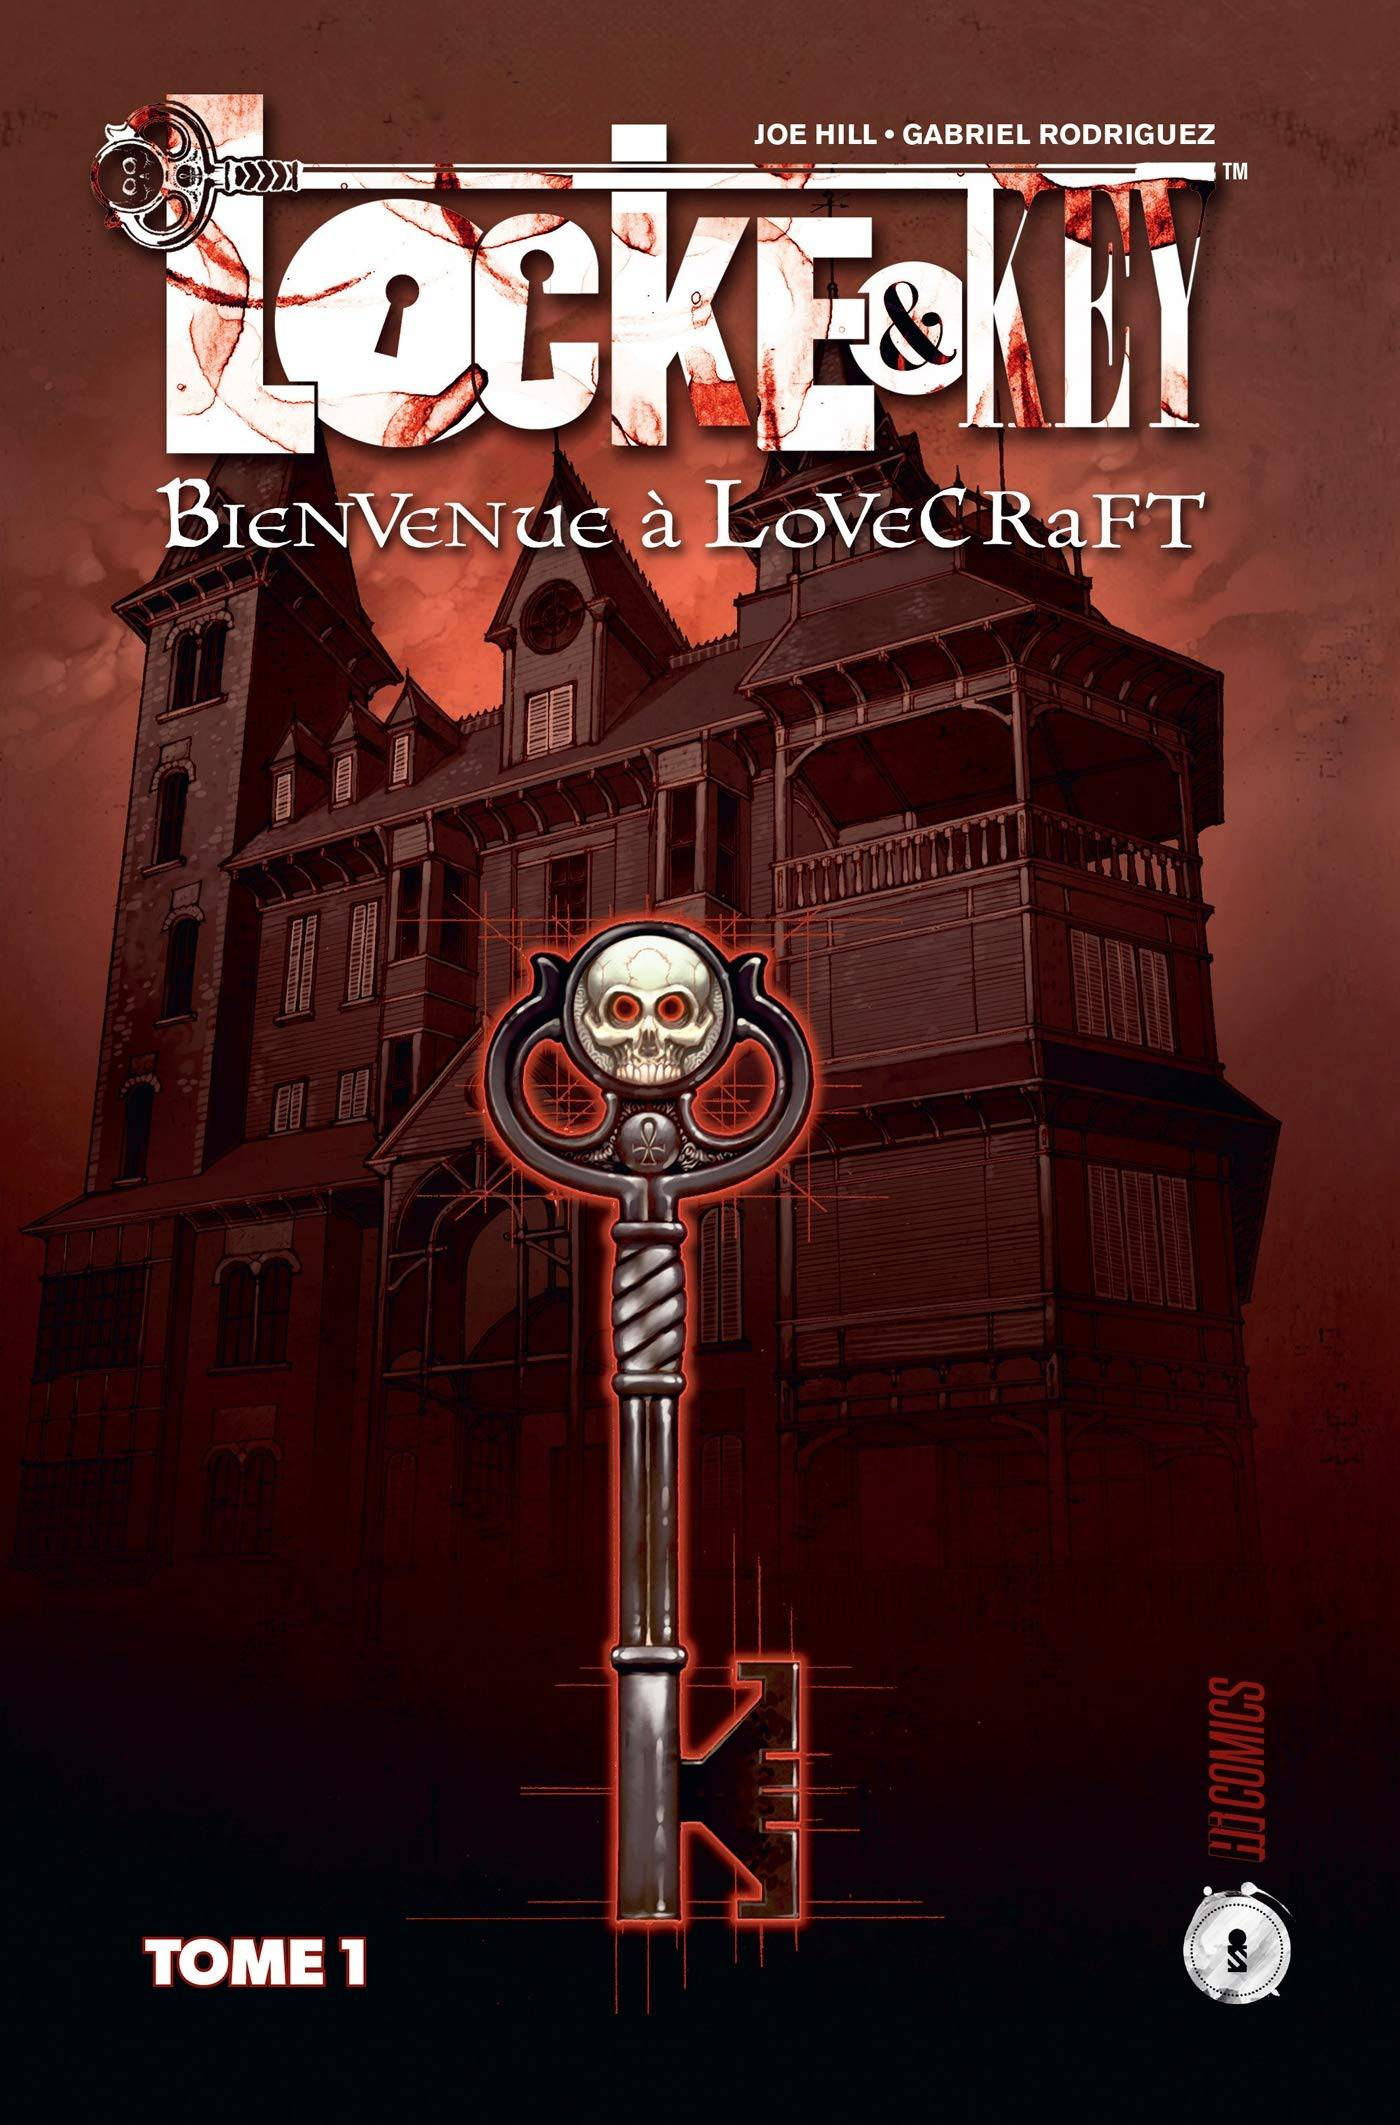 Locke & Key tome 1: Bienvenue à Lovecraft